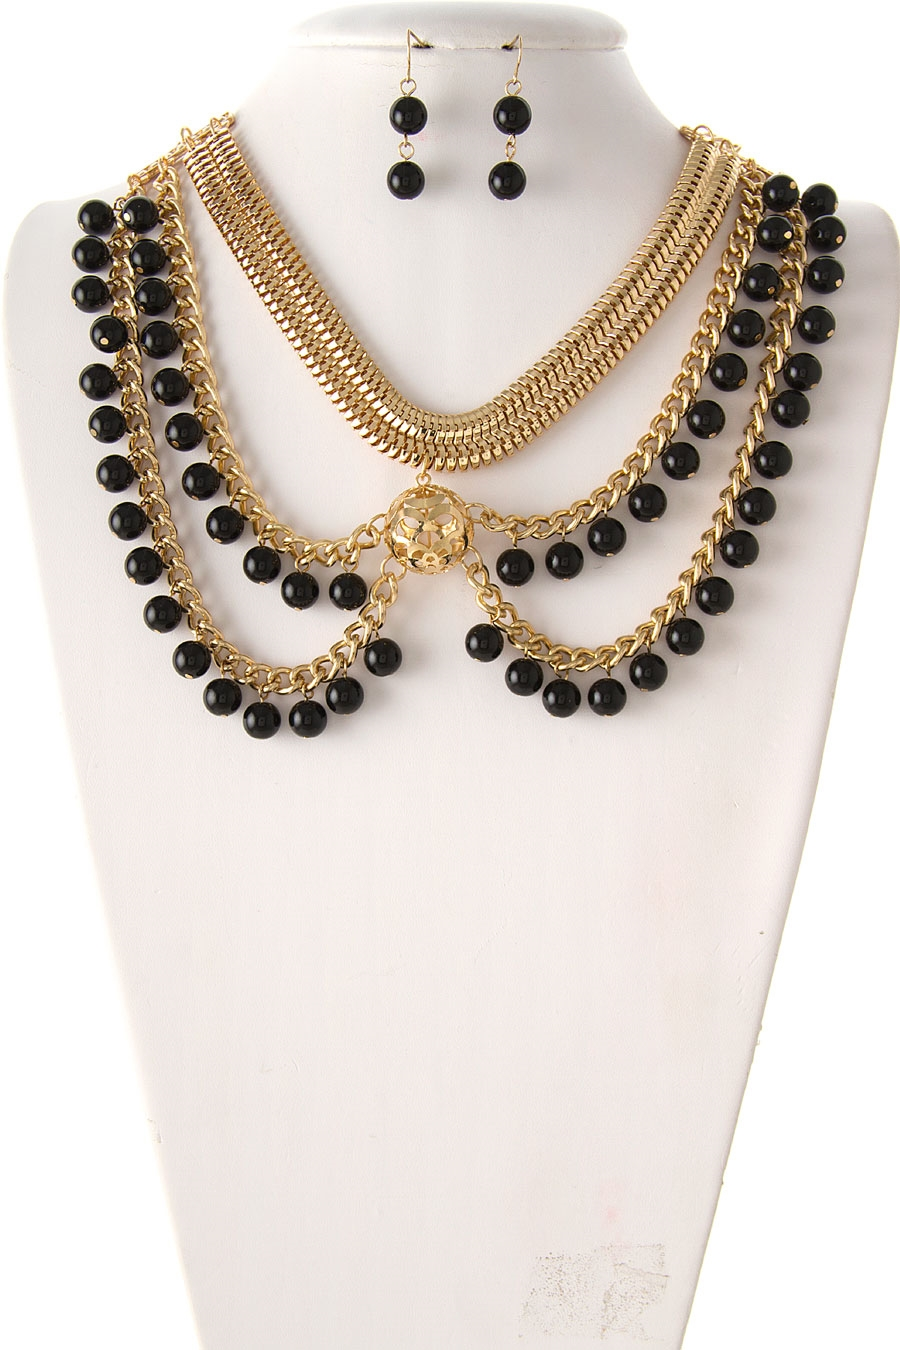 MESH CHAIN BIB NECKLACE - orangeshine.com